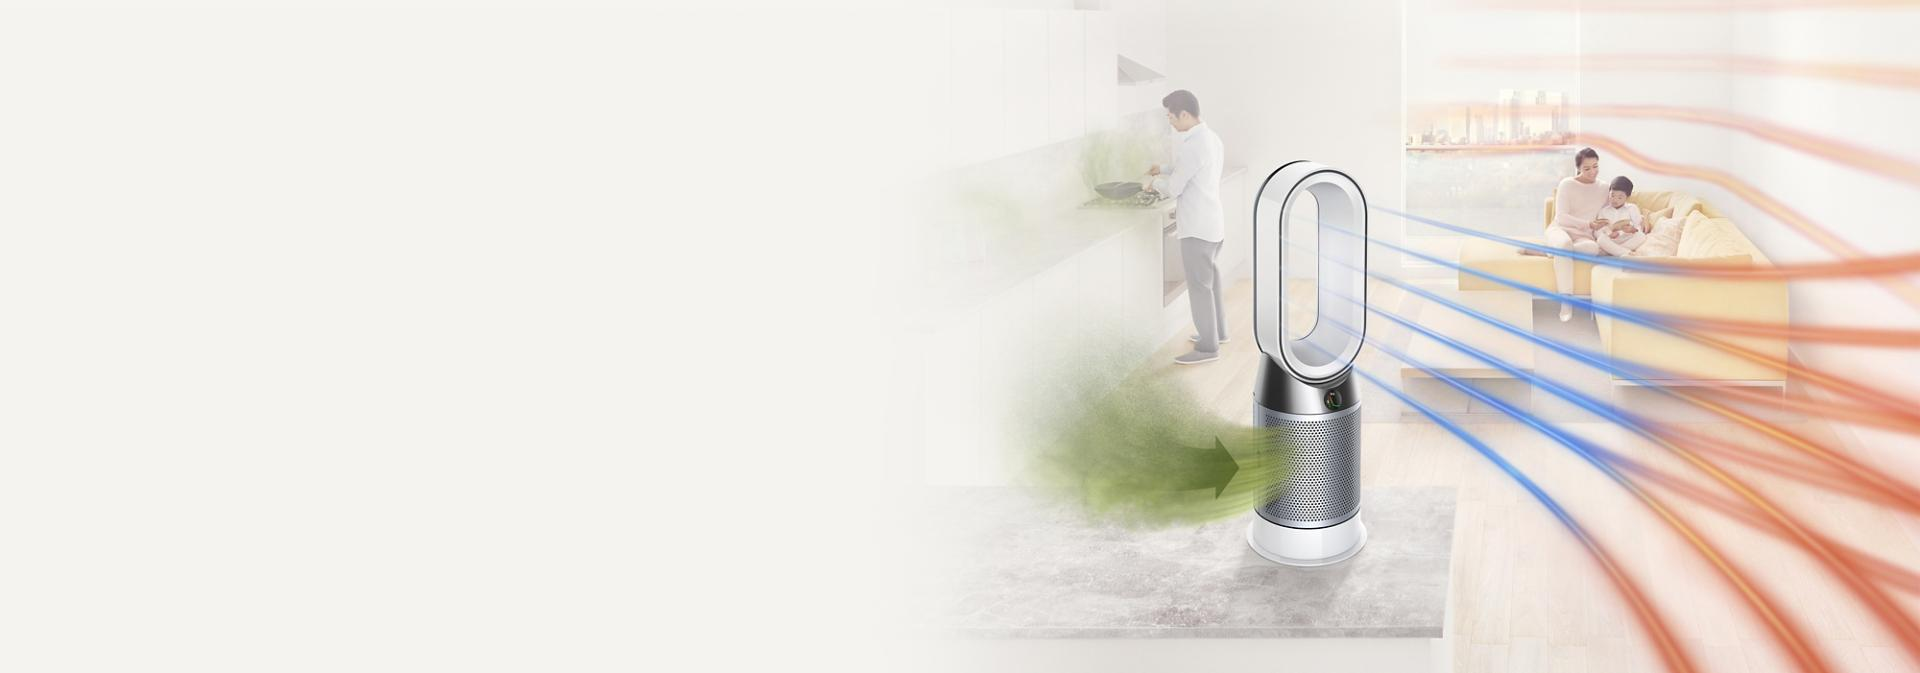 Dyson Pure Hot+Cool purifier projecting purified air and heating room